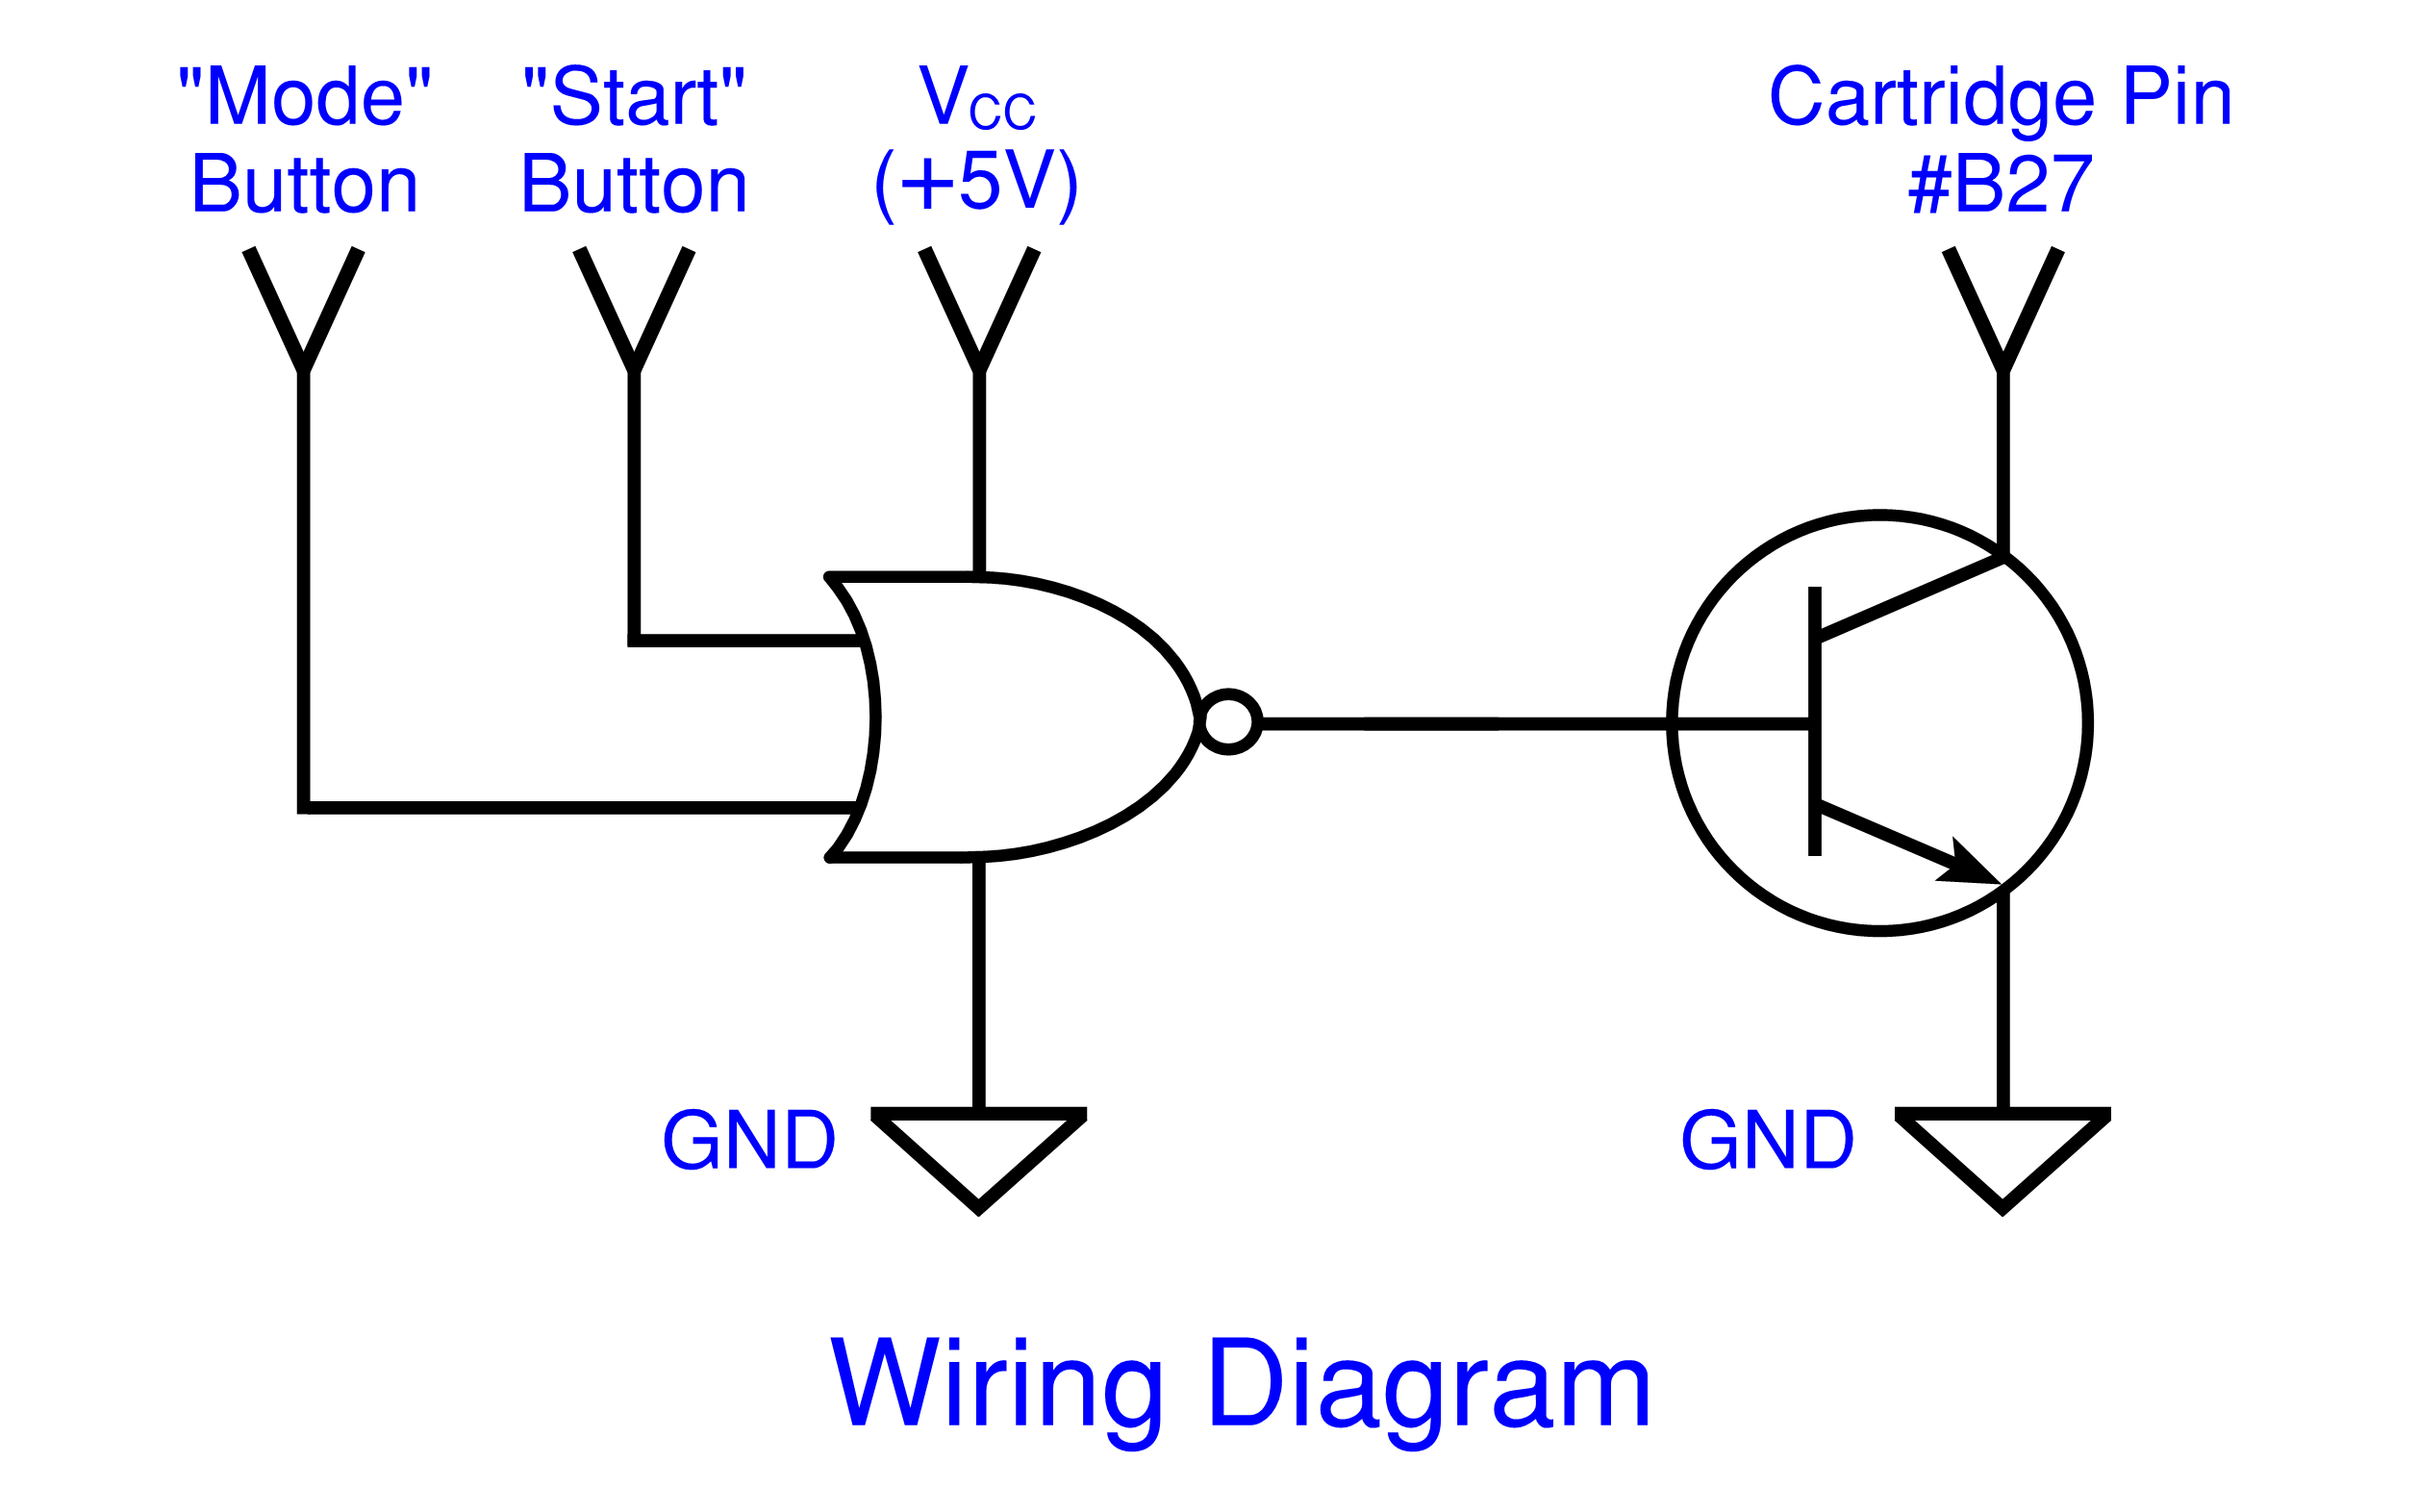 Sega Nomad Reset Button Mod Wr Labs Transistor Wire Diagram Note 1 The Nor Gate Still Requires Its Own Power Connection To Operate Vcc Gnd Consumption Is So Small Though That It Doesnt Have A